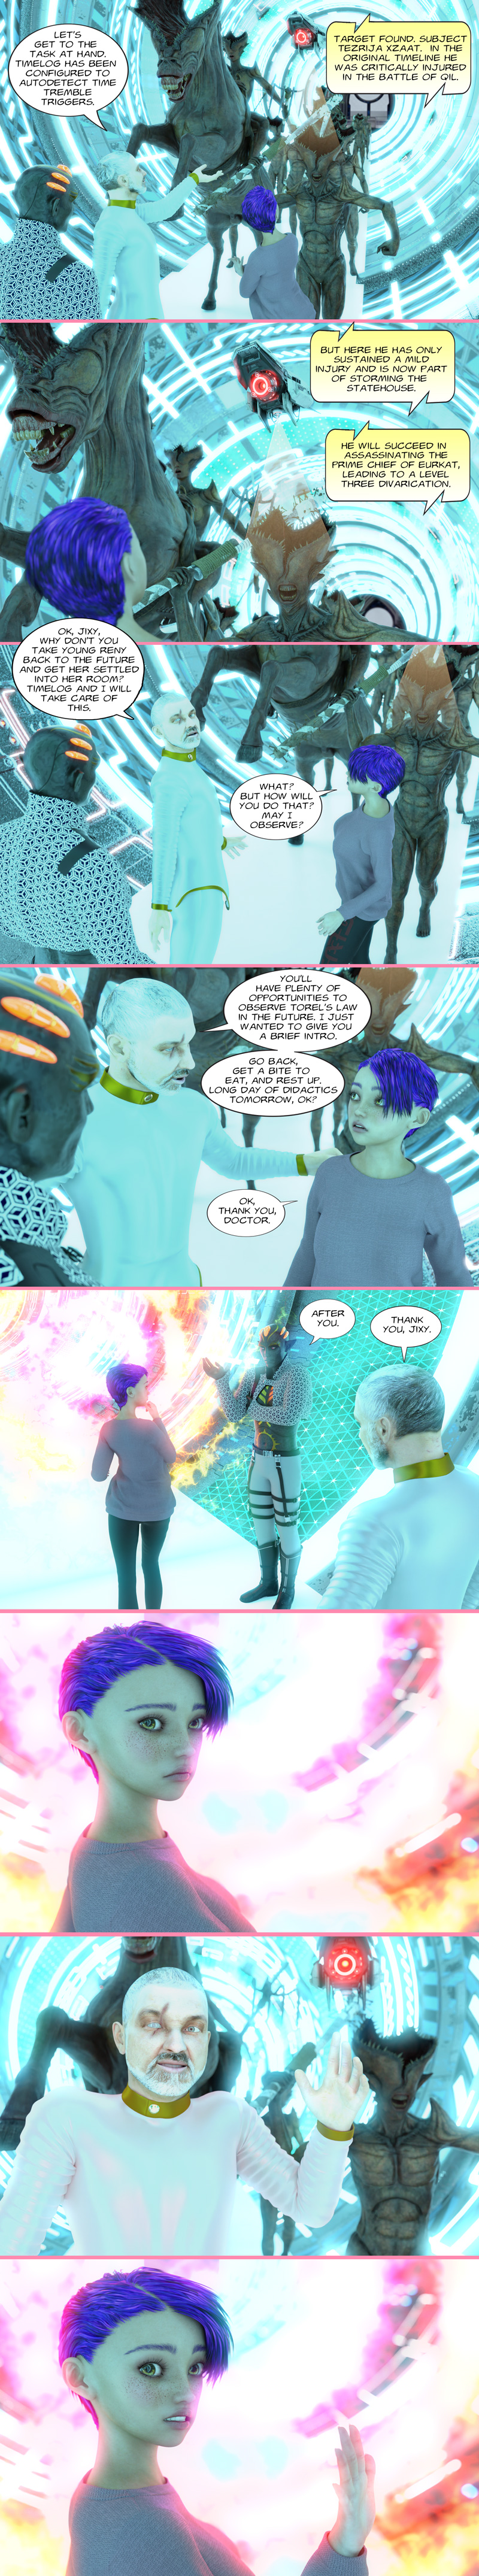 Chapter 19, page 10